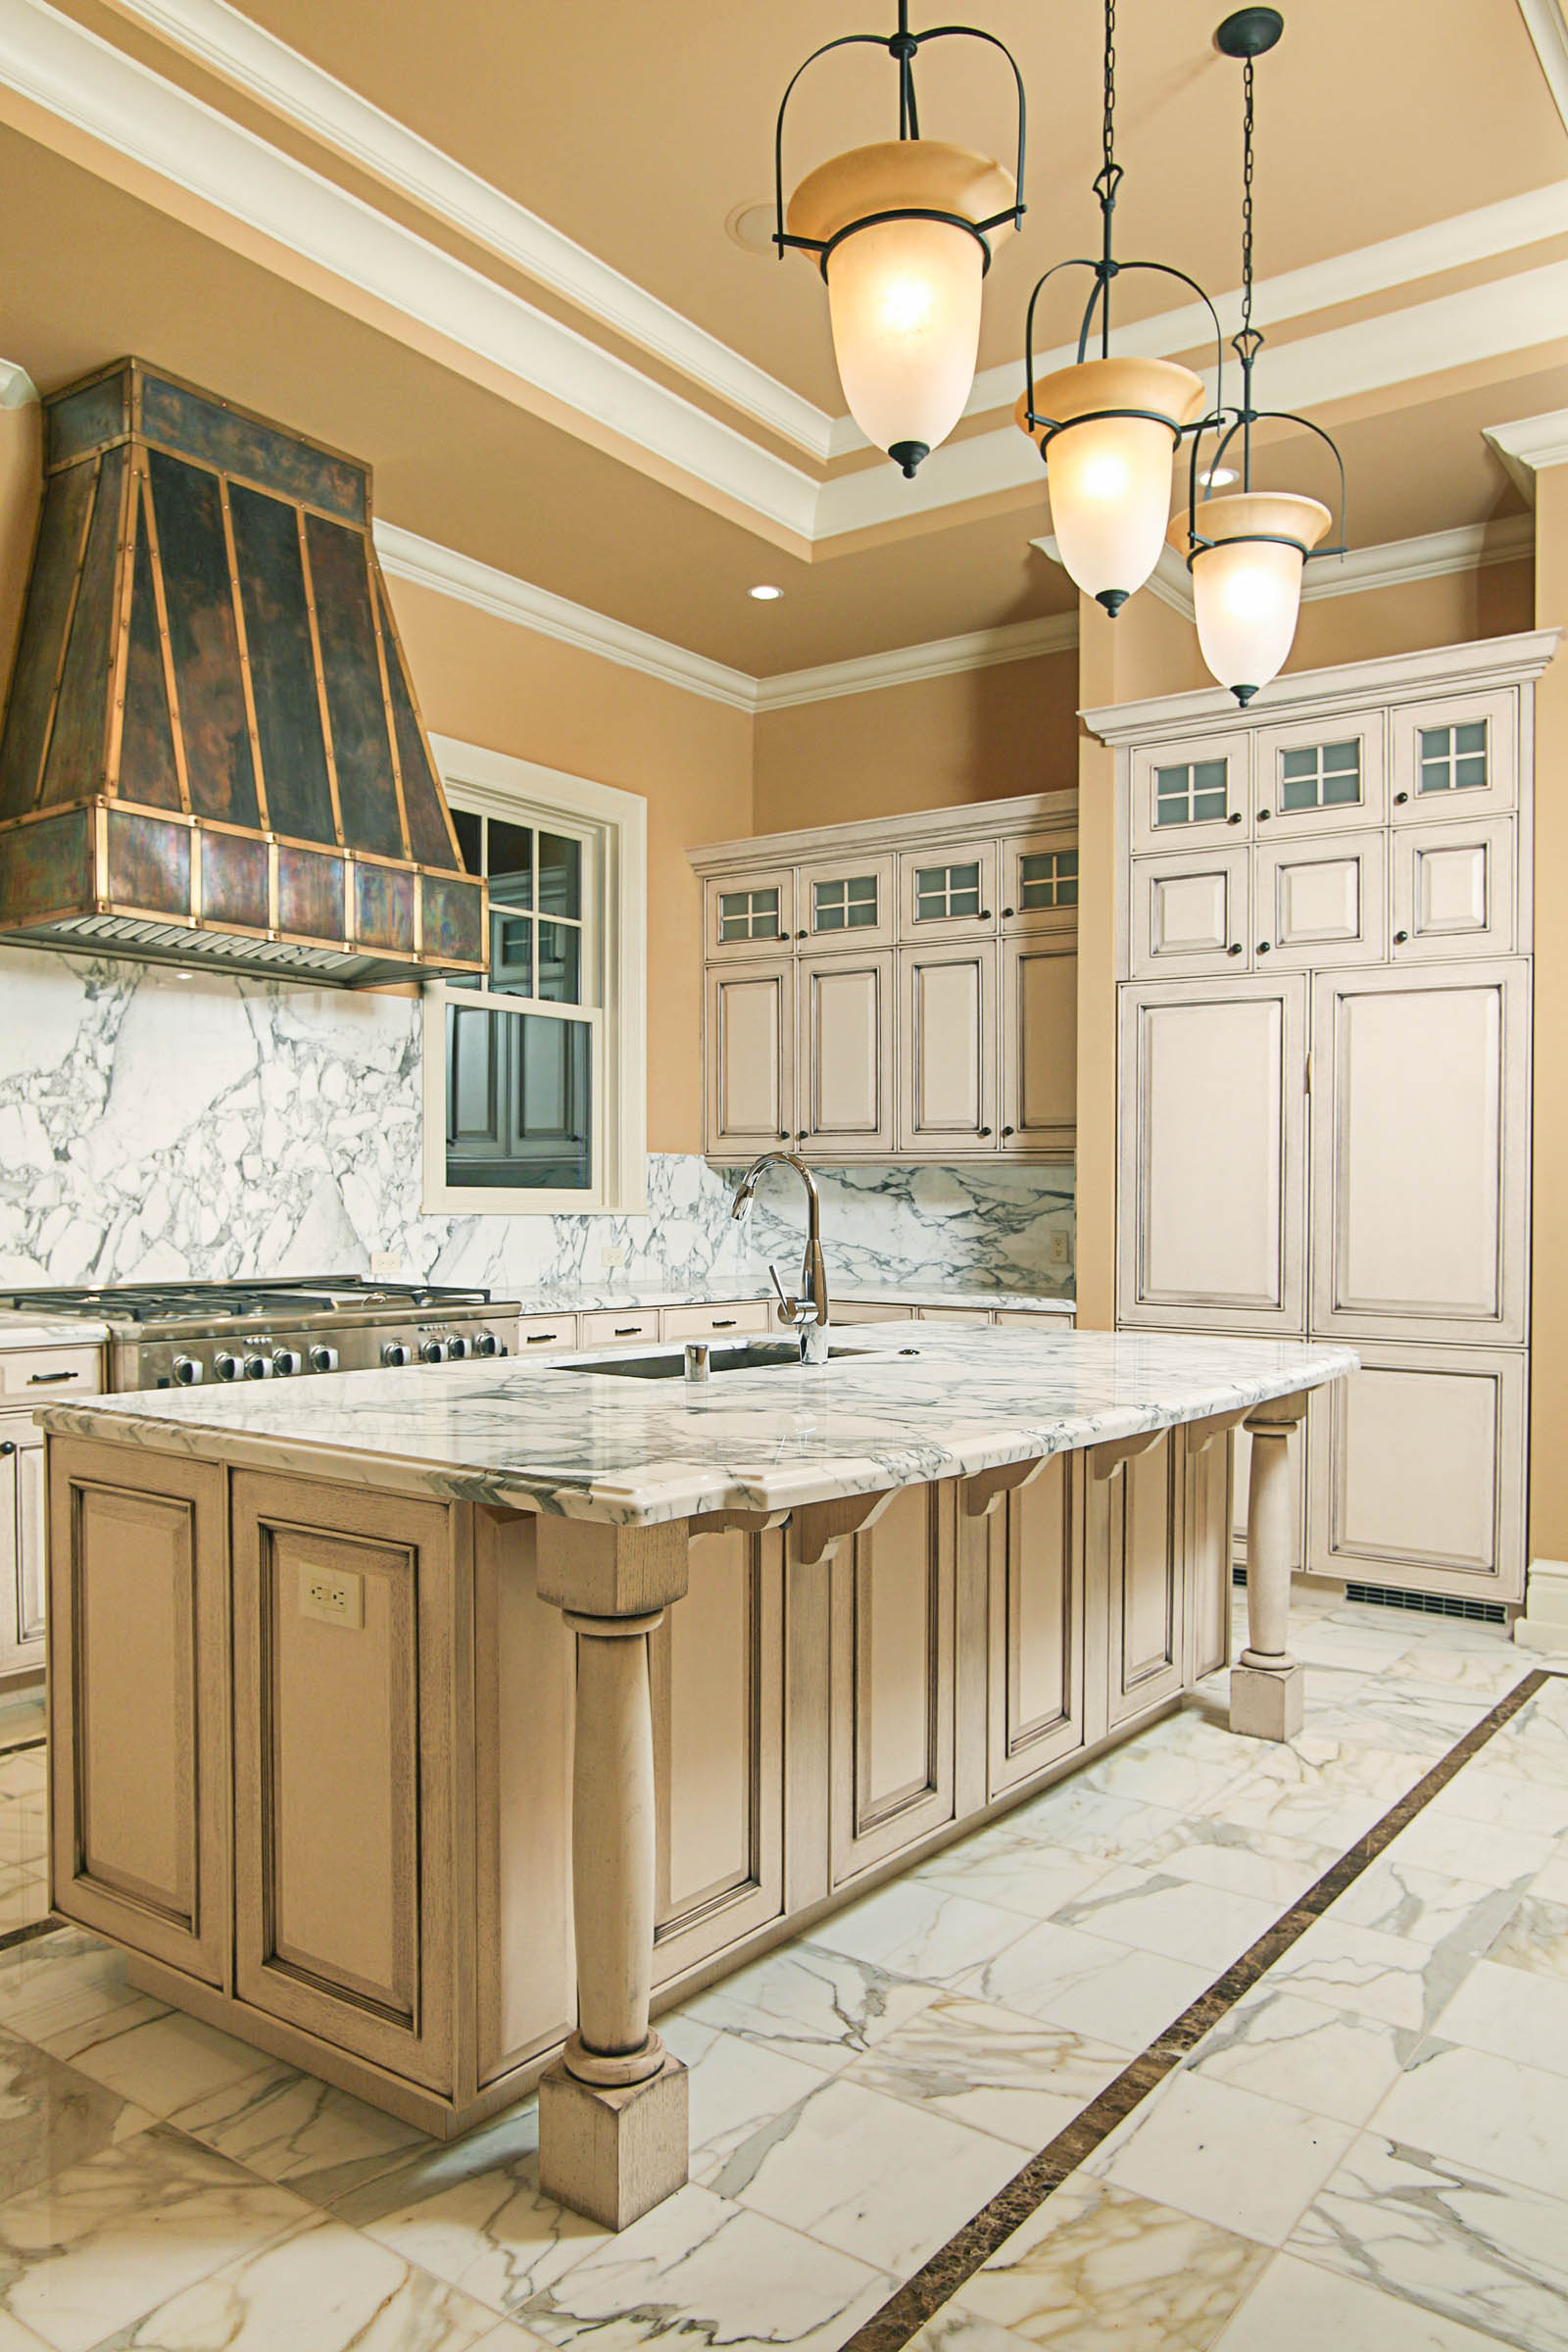 Seattle Tile Contractor